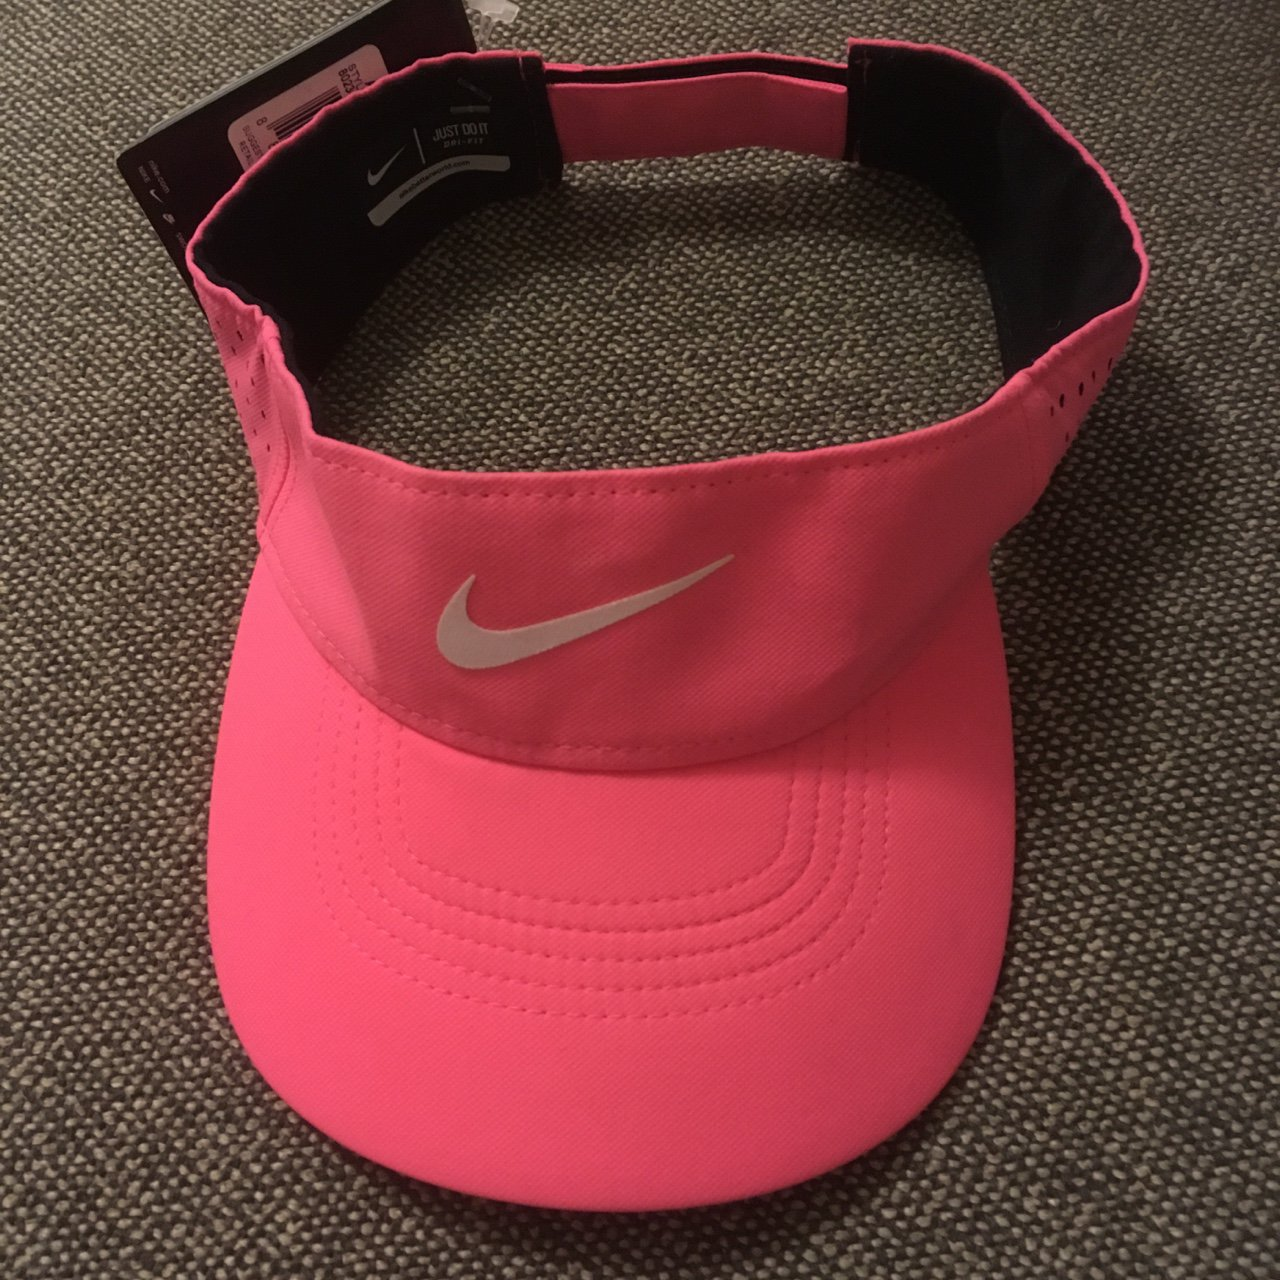 a3fd1220db1 Nike Neon Pink Running Visor Hat  brand new with tags retail - Depop